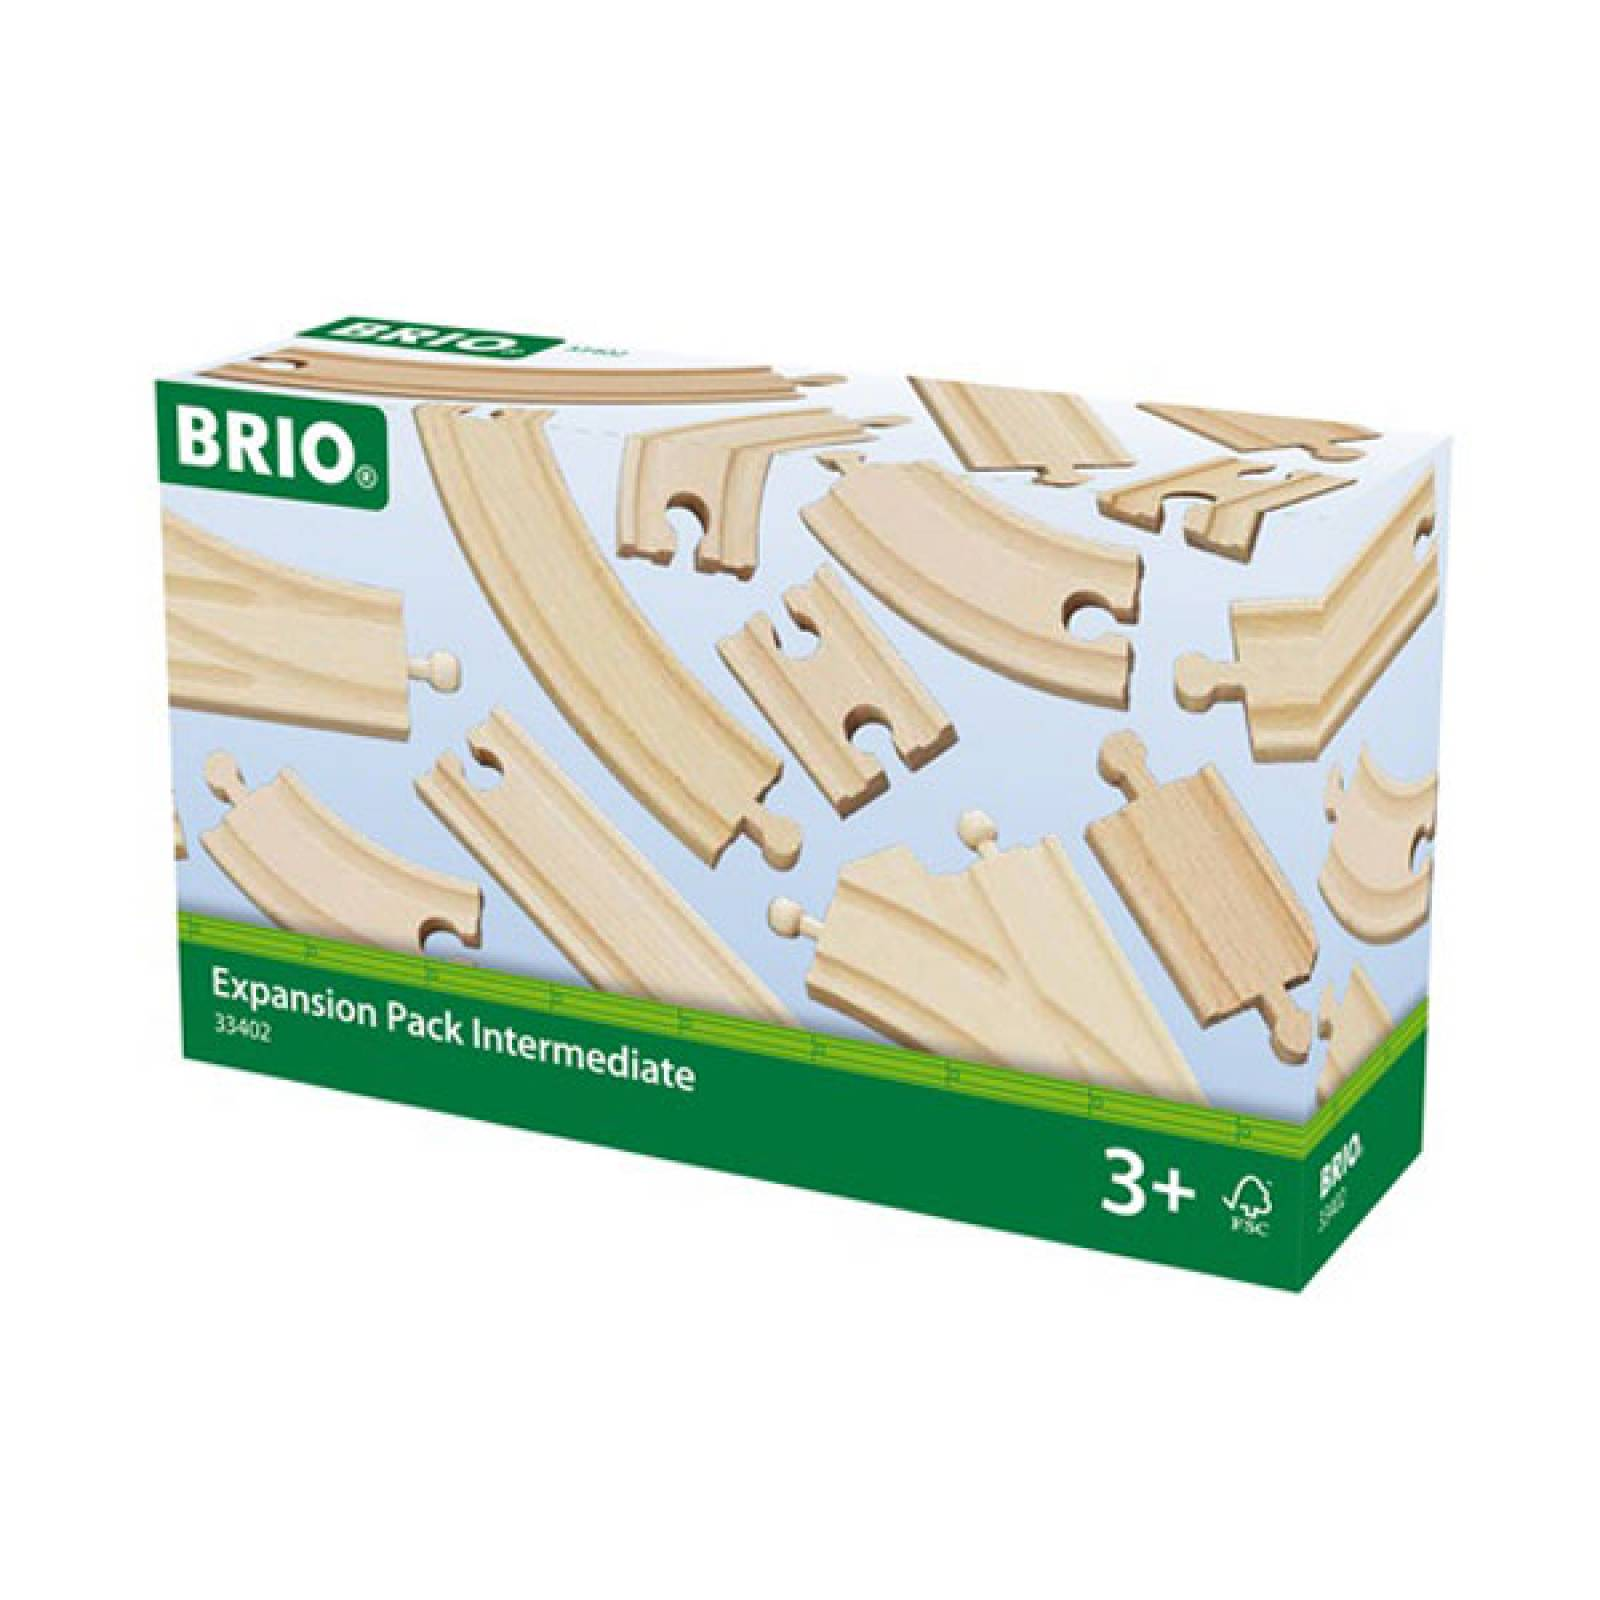 Expansion Pack Intermediate BRIO® Wooden Railway Age 3+ thumbnails